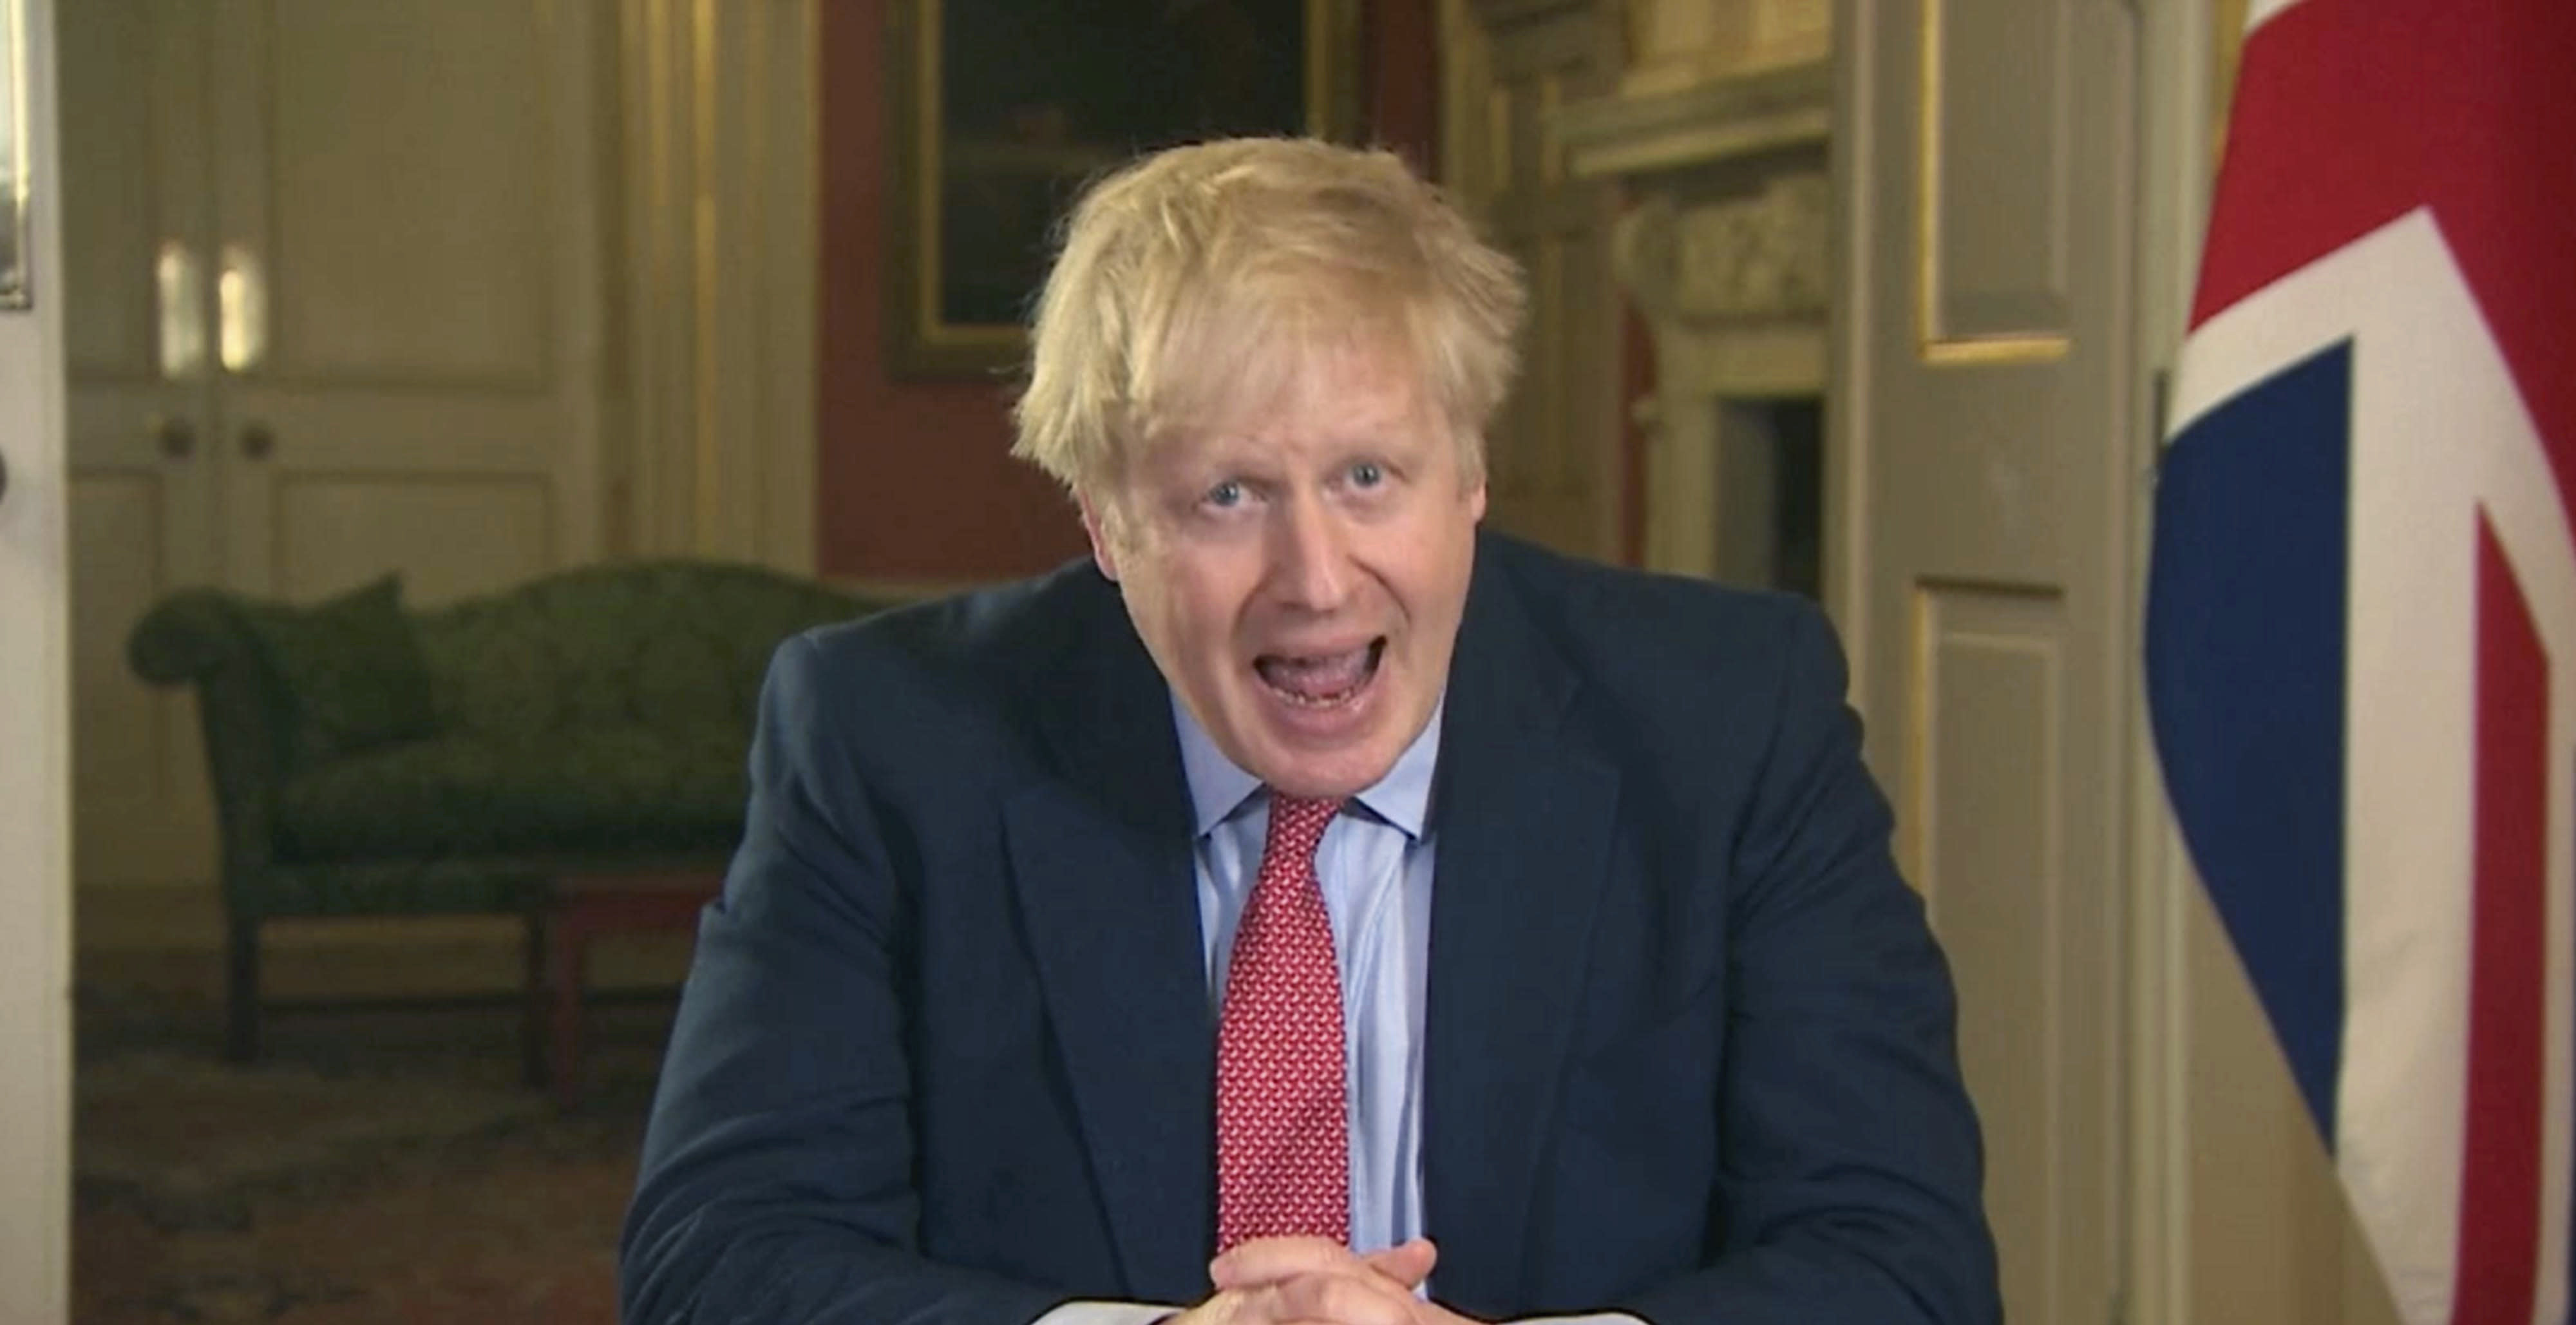 In this screen grab taken from video, Britain's Prime Minister Boris Johnson addresses the nation from 10 Downing Street, in London, Monday March 23, 2020. Johnson has ordered the closure of most retail stores and banned gatherings for three in a stepped-up response to slow the new coronavirus. The measures Johnson announced in an address to the nation on Monday night a mark a departure from the British government's until-now more relaxed approach to the worldwide COVID-19 pandemic. (PA via AP)